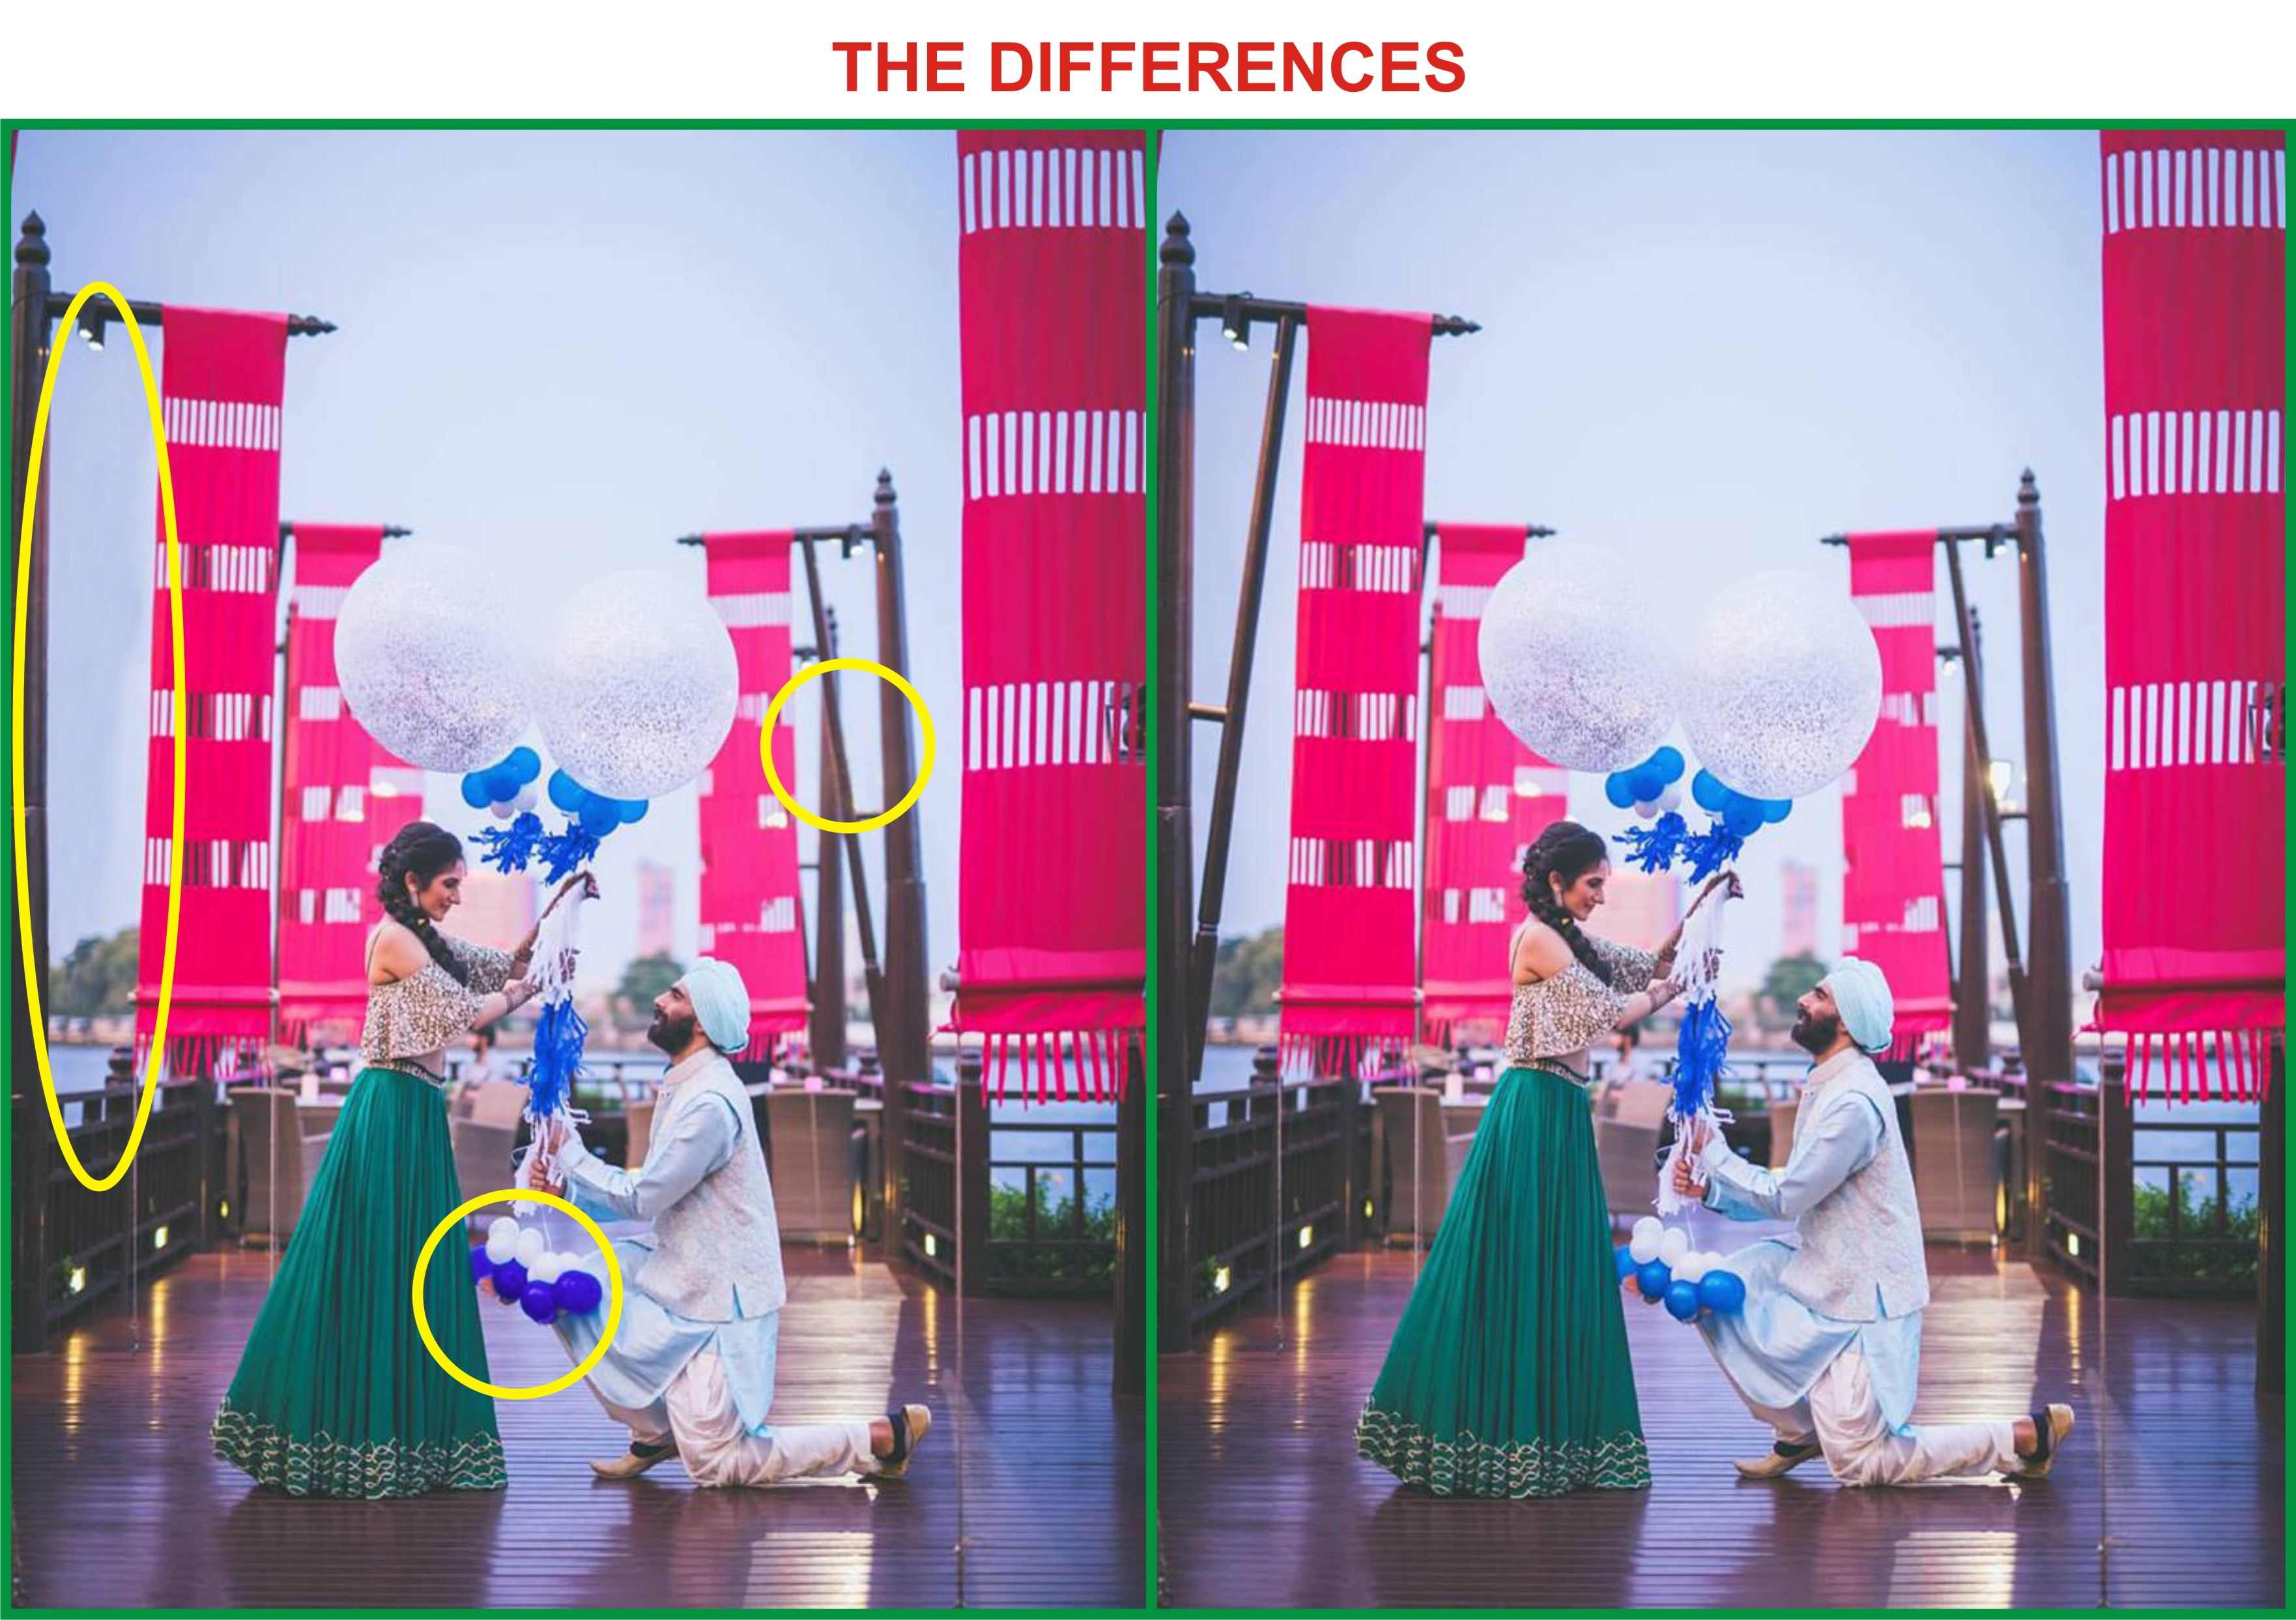 The differences_4